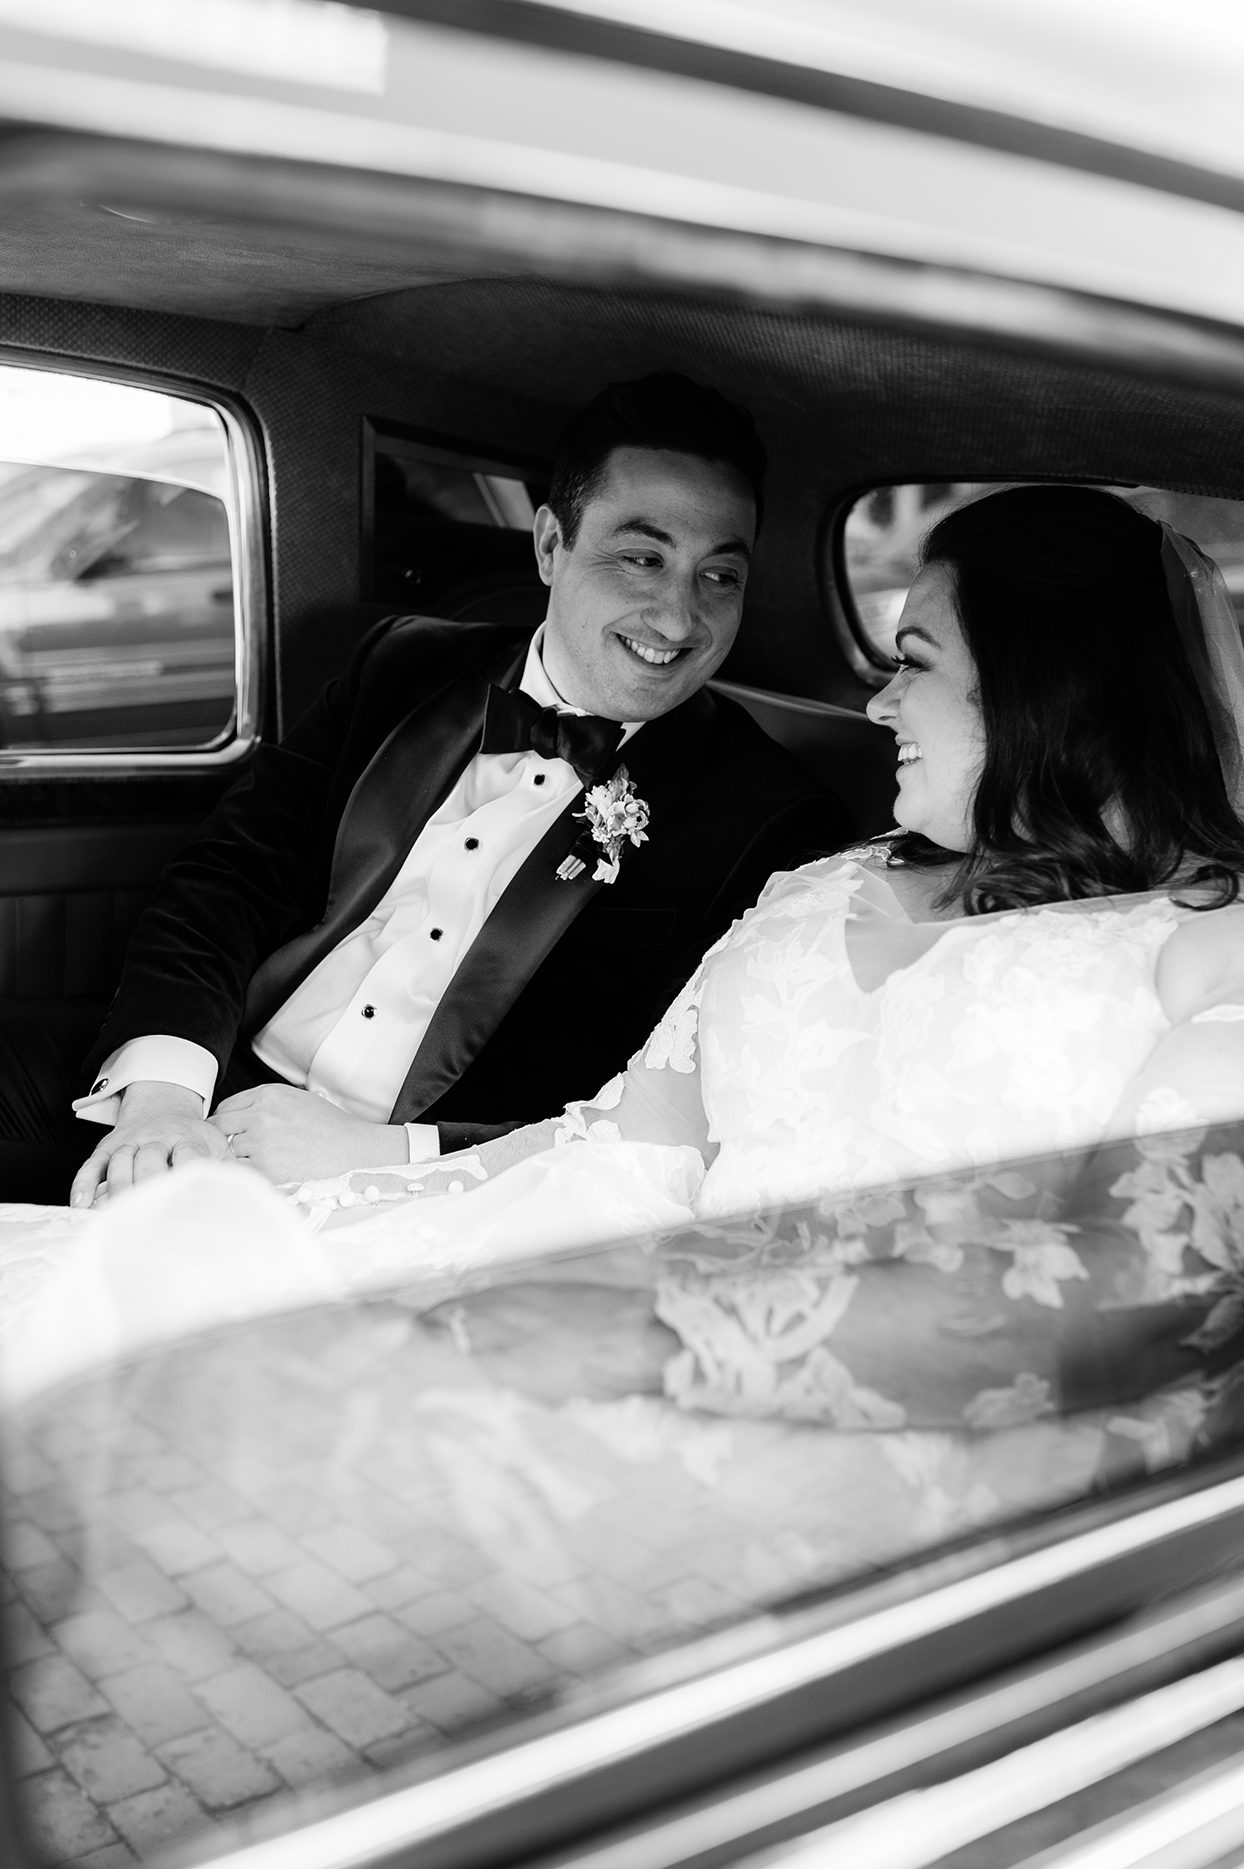 groom and bride smiling at each other in car